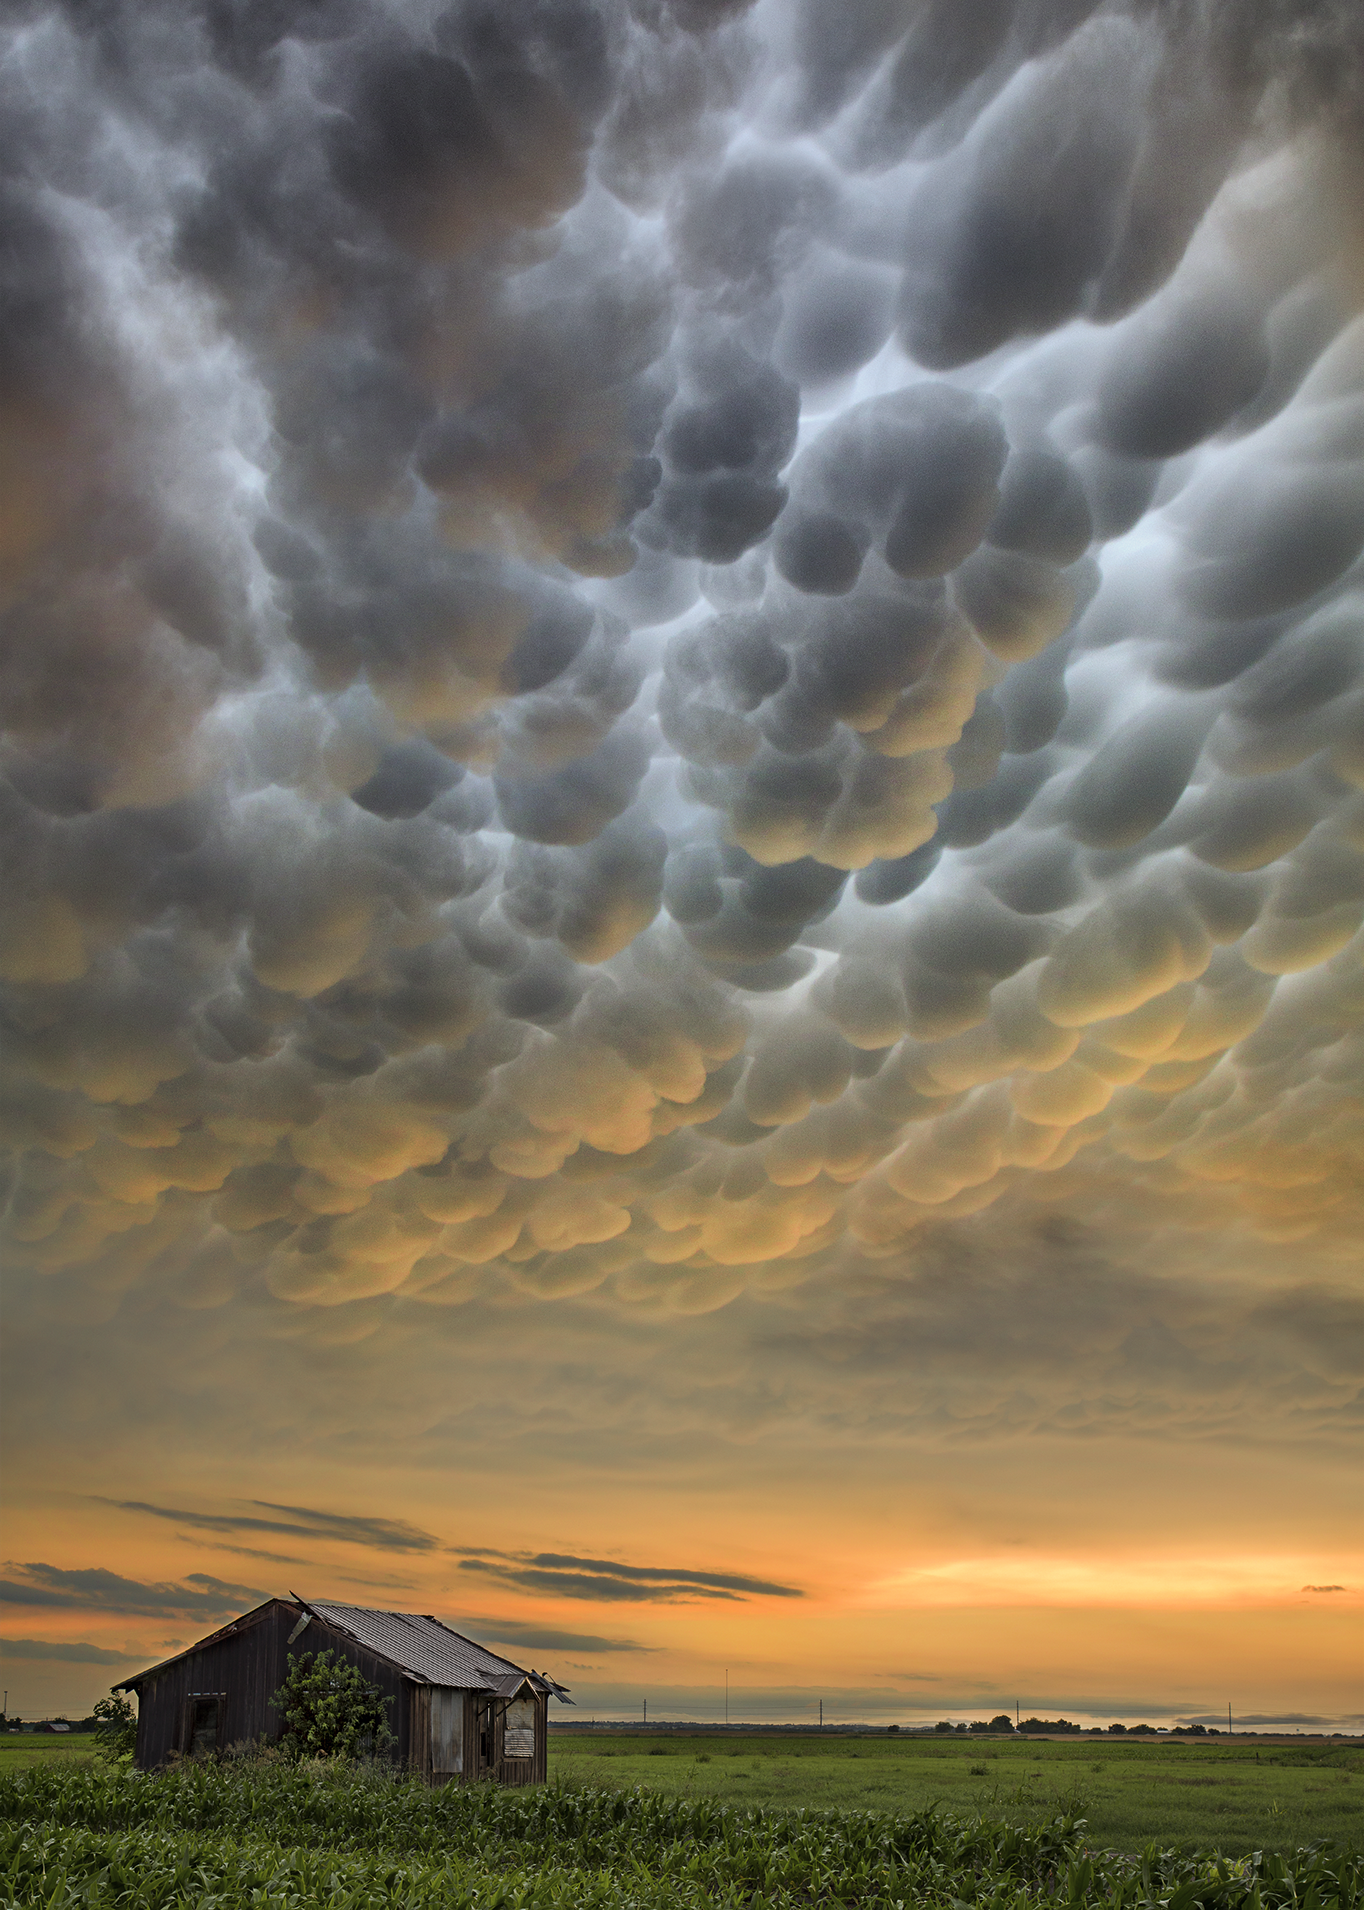 Mammatus clouds after tornadic supercells pushed through Central Texas on May 25, 2015.